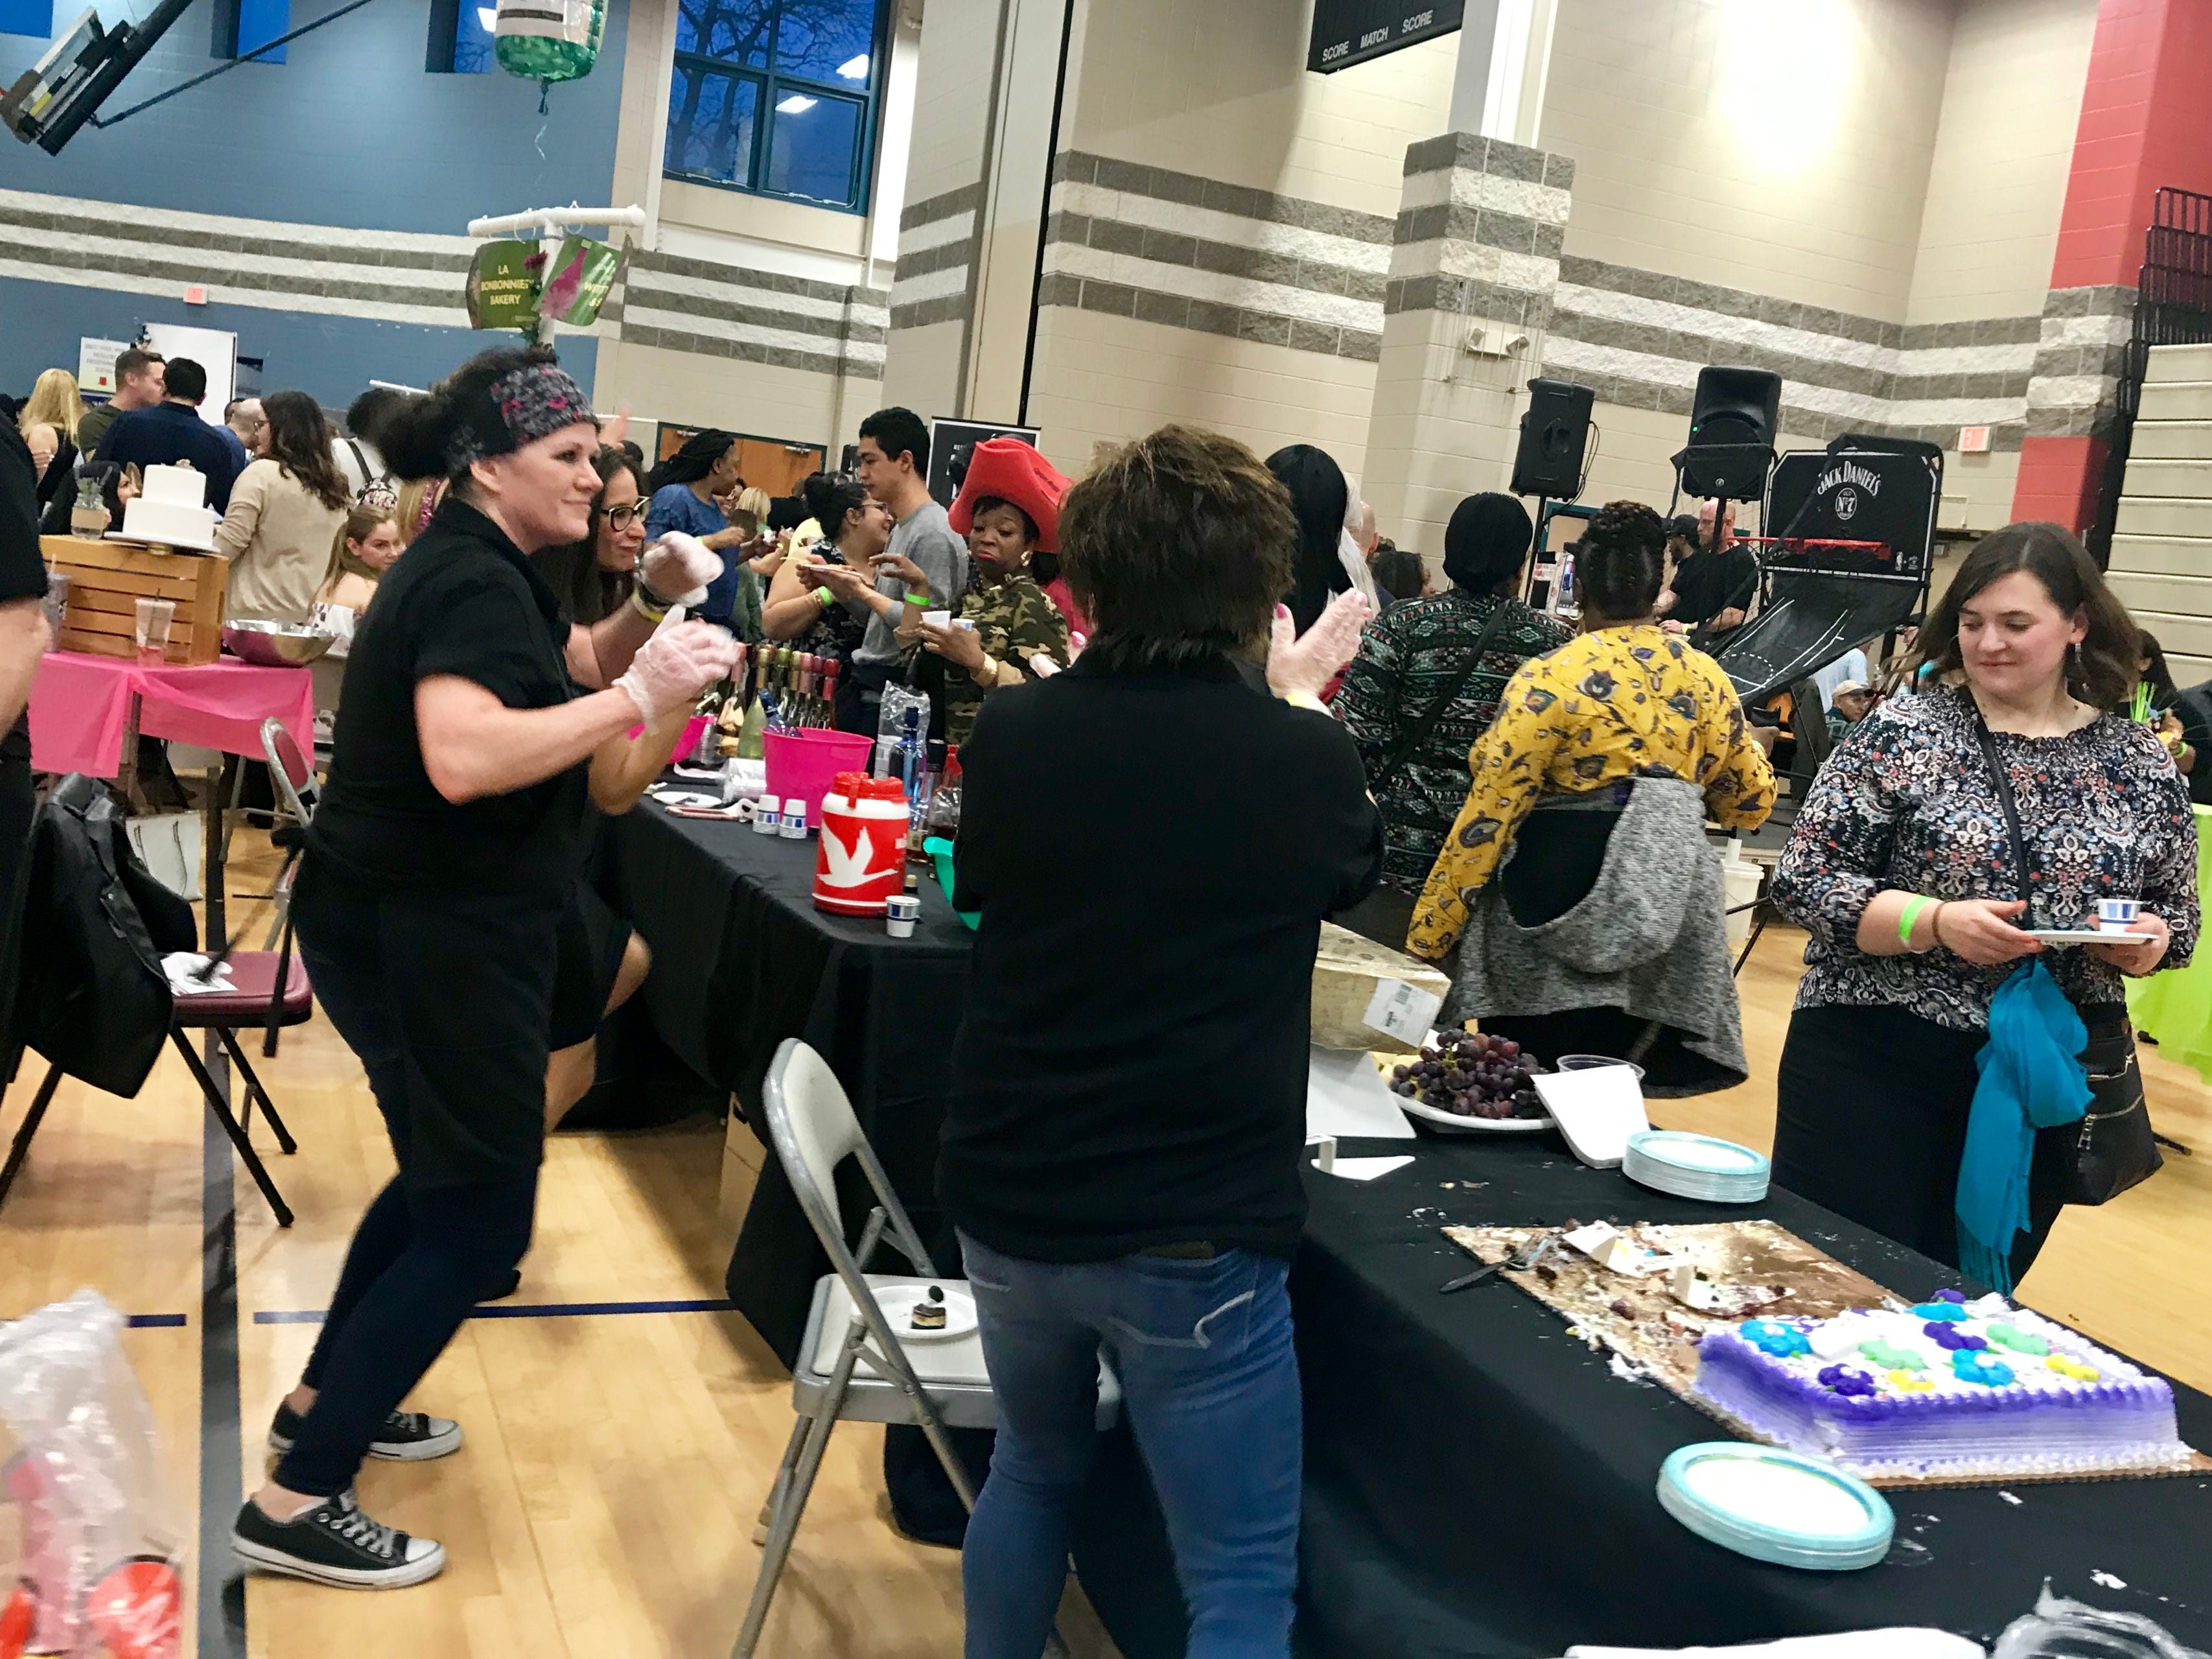 Scenes from Rahway's sold-out Taste of Spring, held Friday, April 12 at the Rahway Recreation Center.